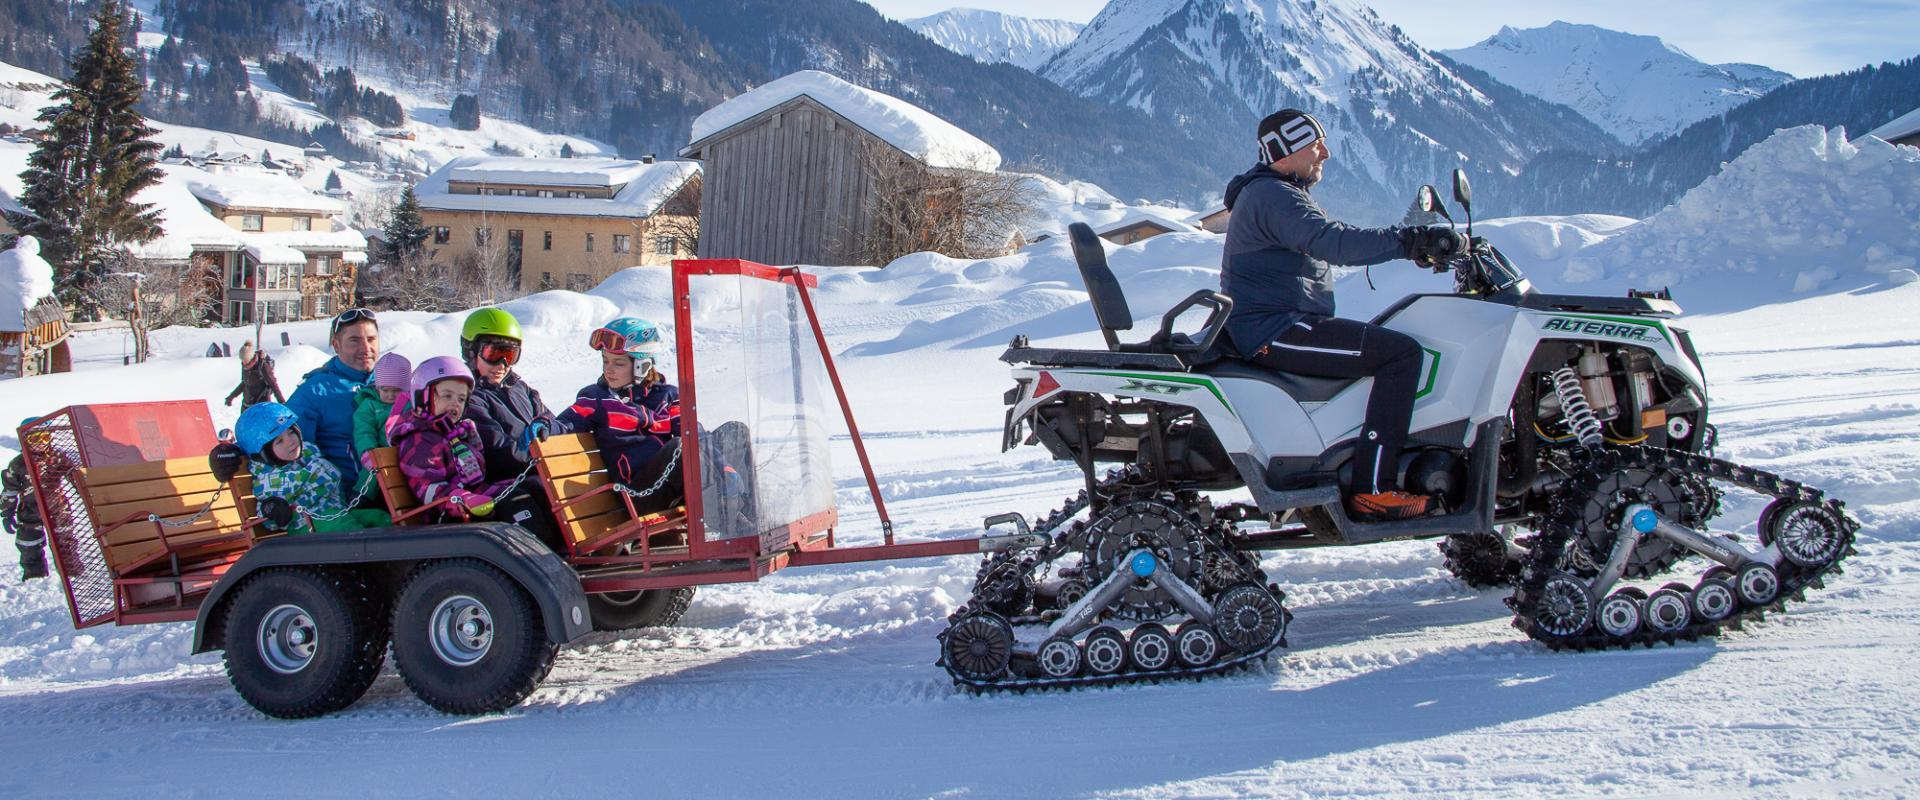 Quadtransport im Alpenhotel Post